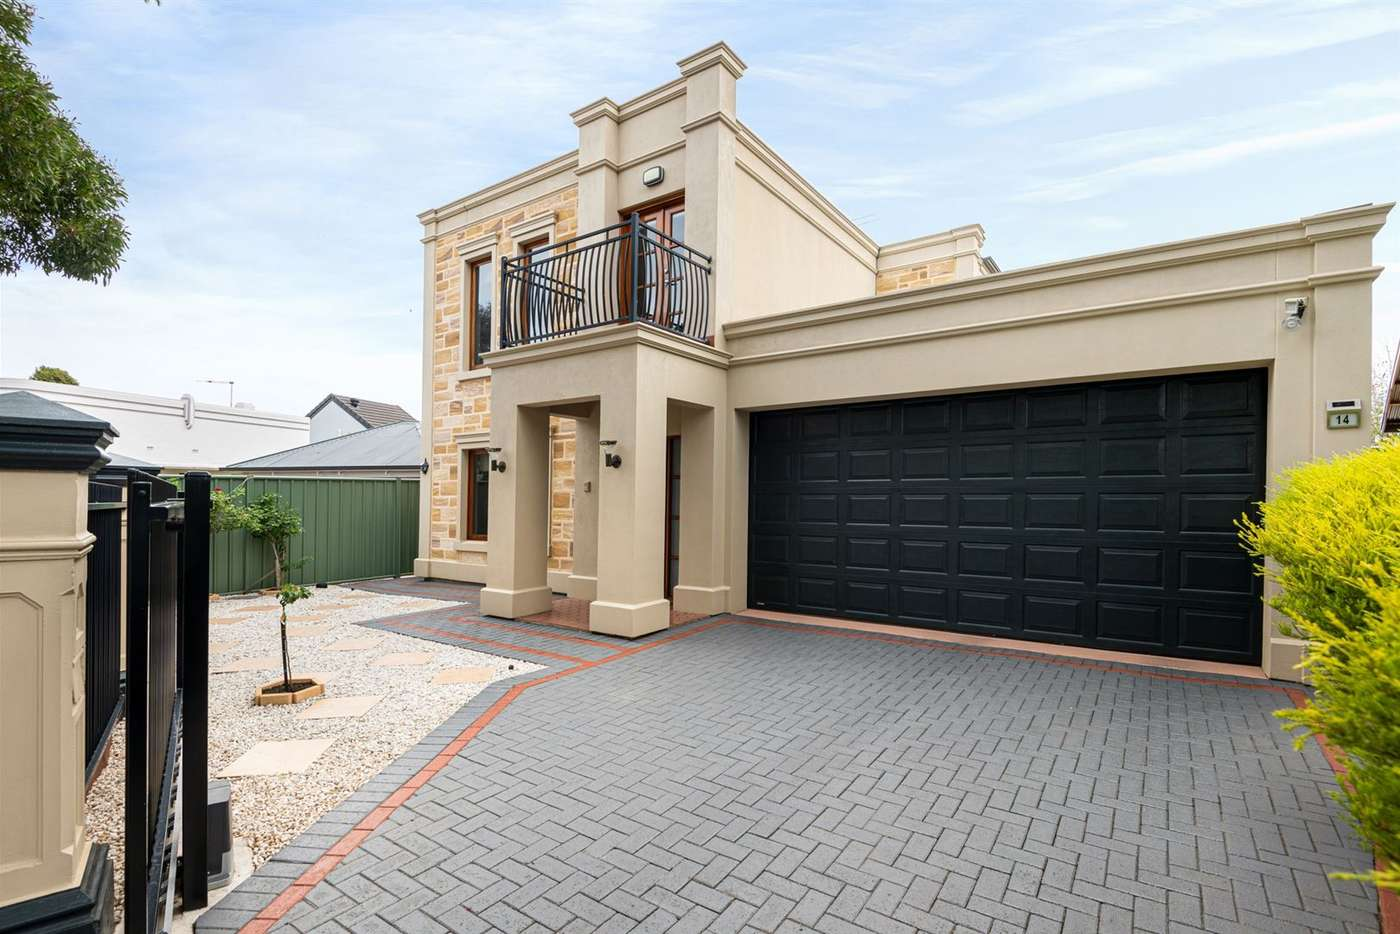 Main view of Homely house listing, 14 Martens Ave, Fullarton SA 5063